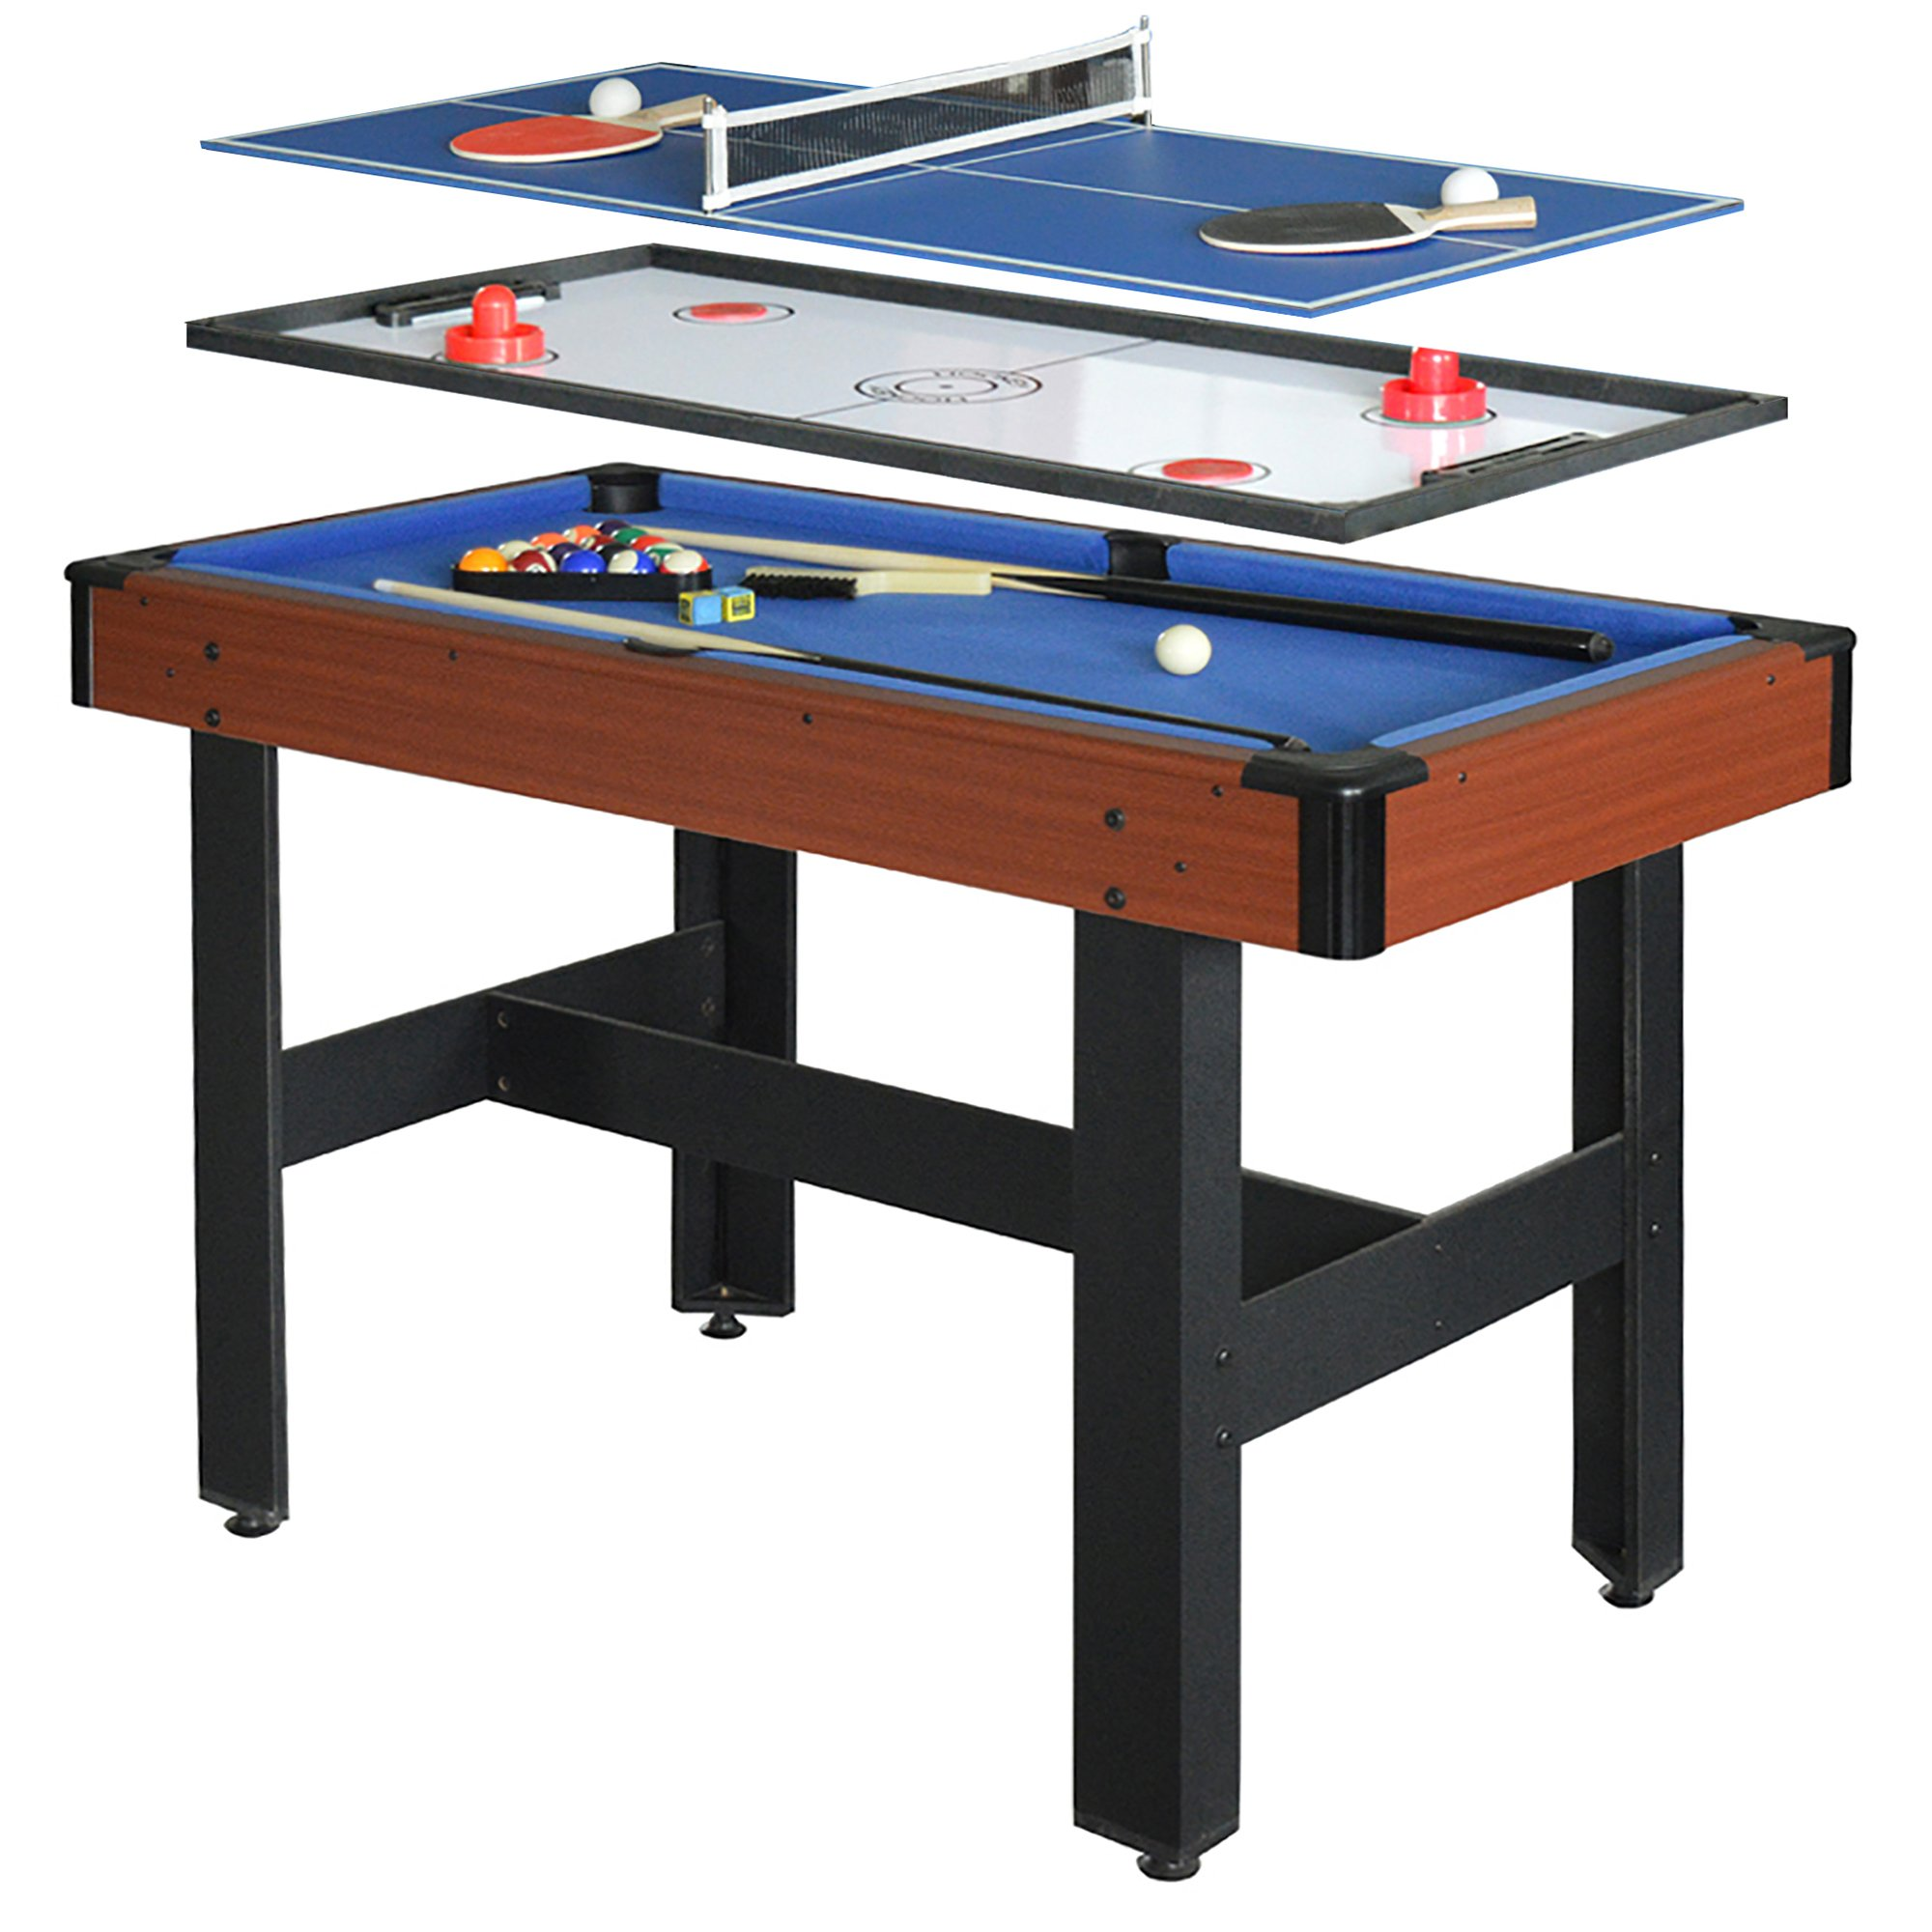 Triad 48-in 3-in-1 Multi-Game Table by Hathaway